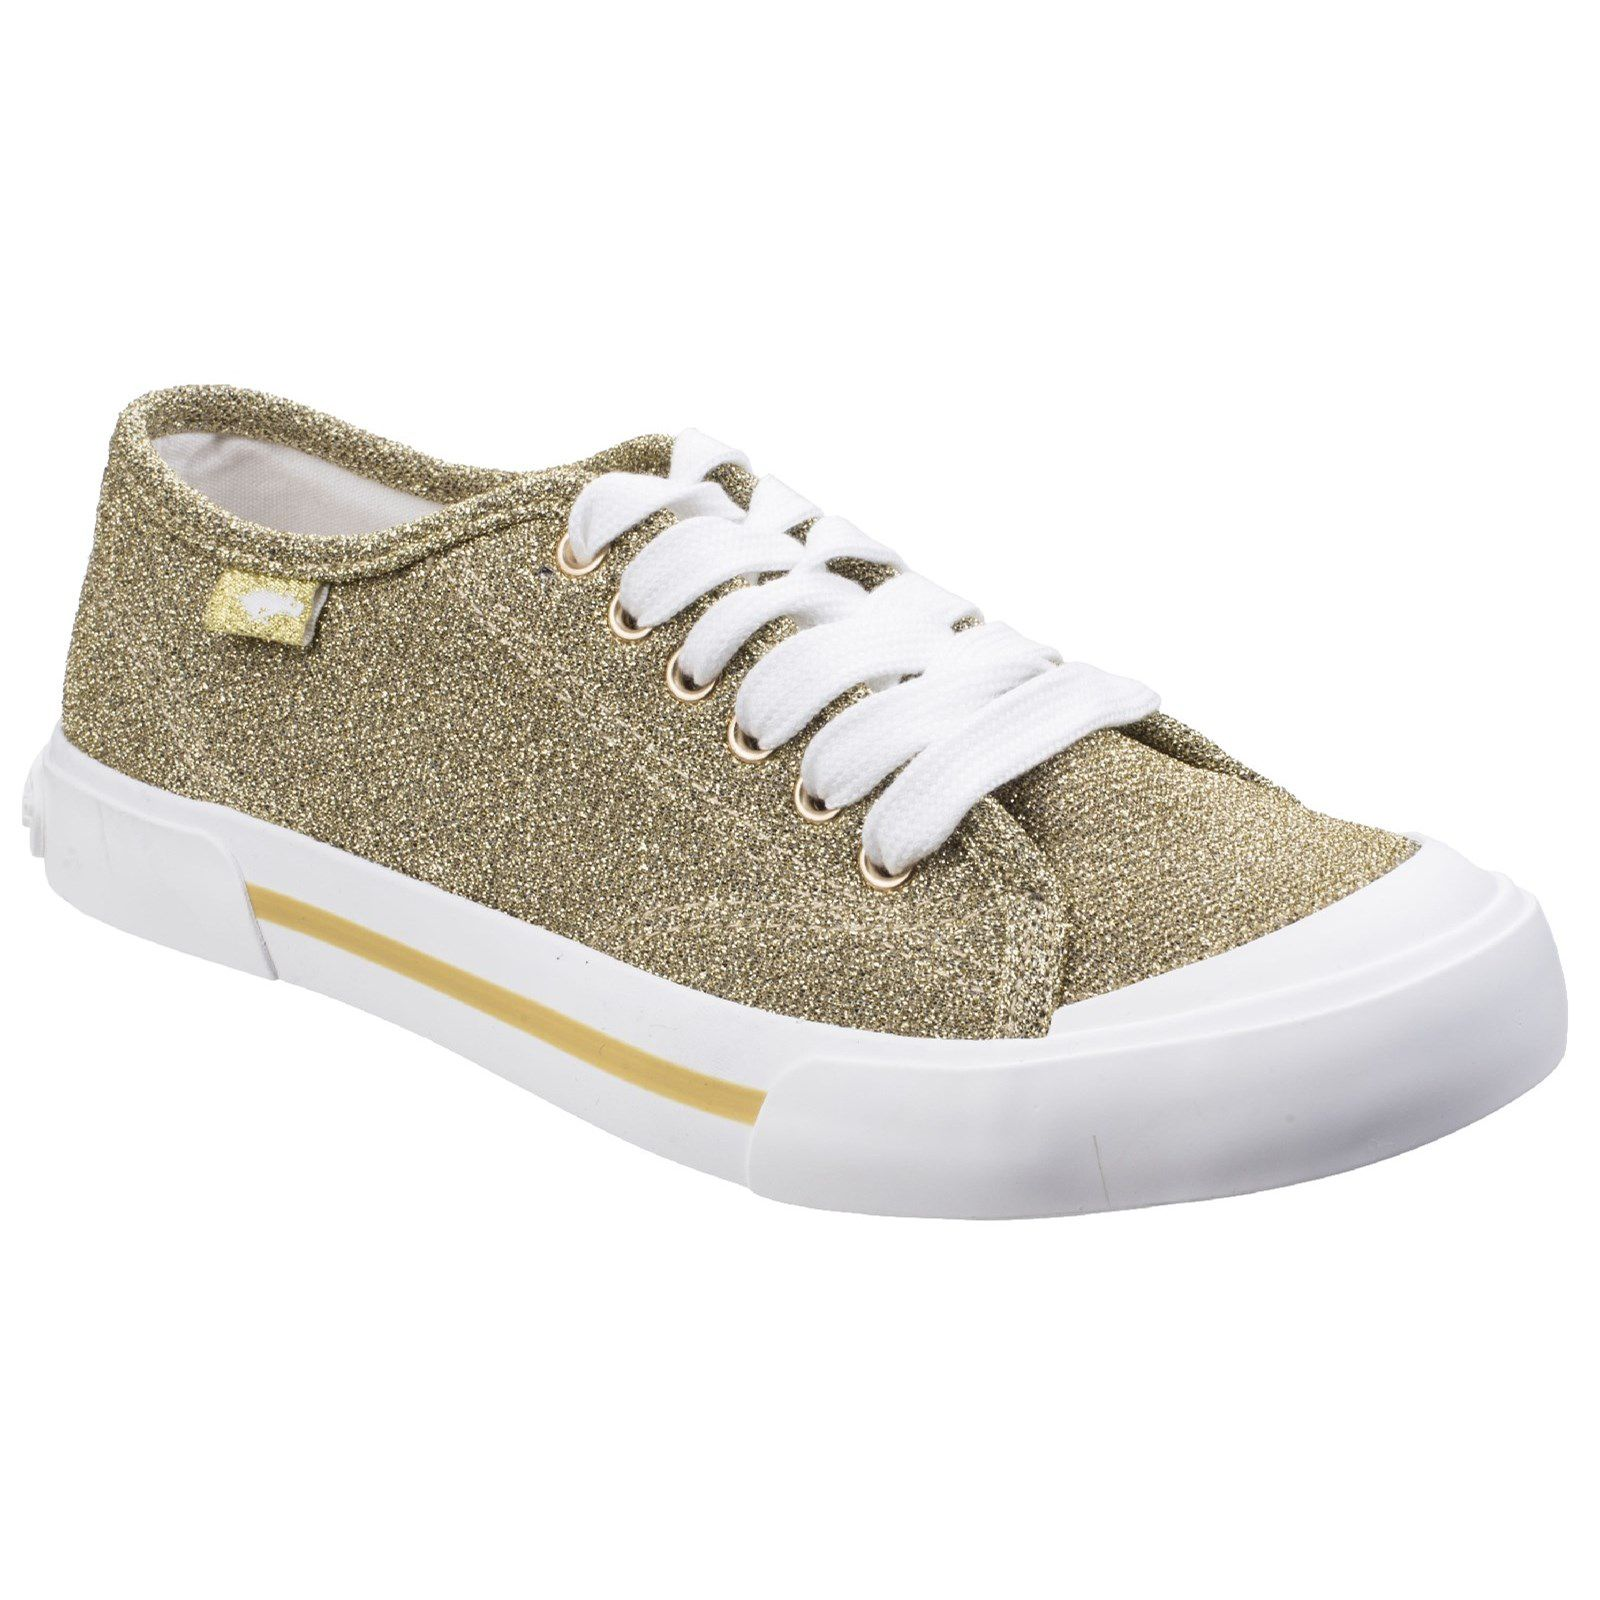 Rocket Dog Jumpin Disco Lace-Up Trainer, Gold